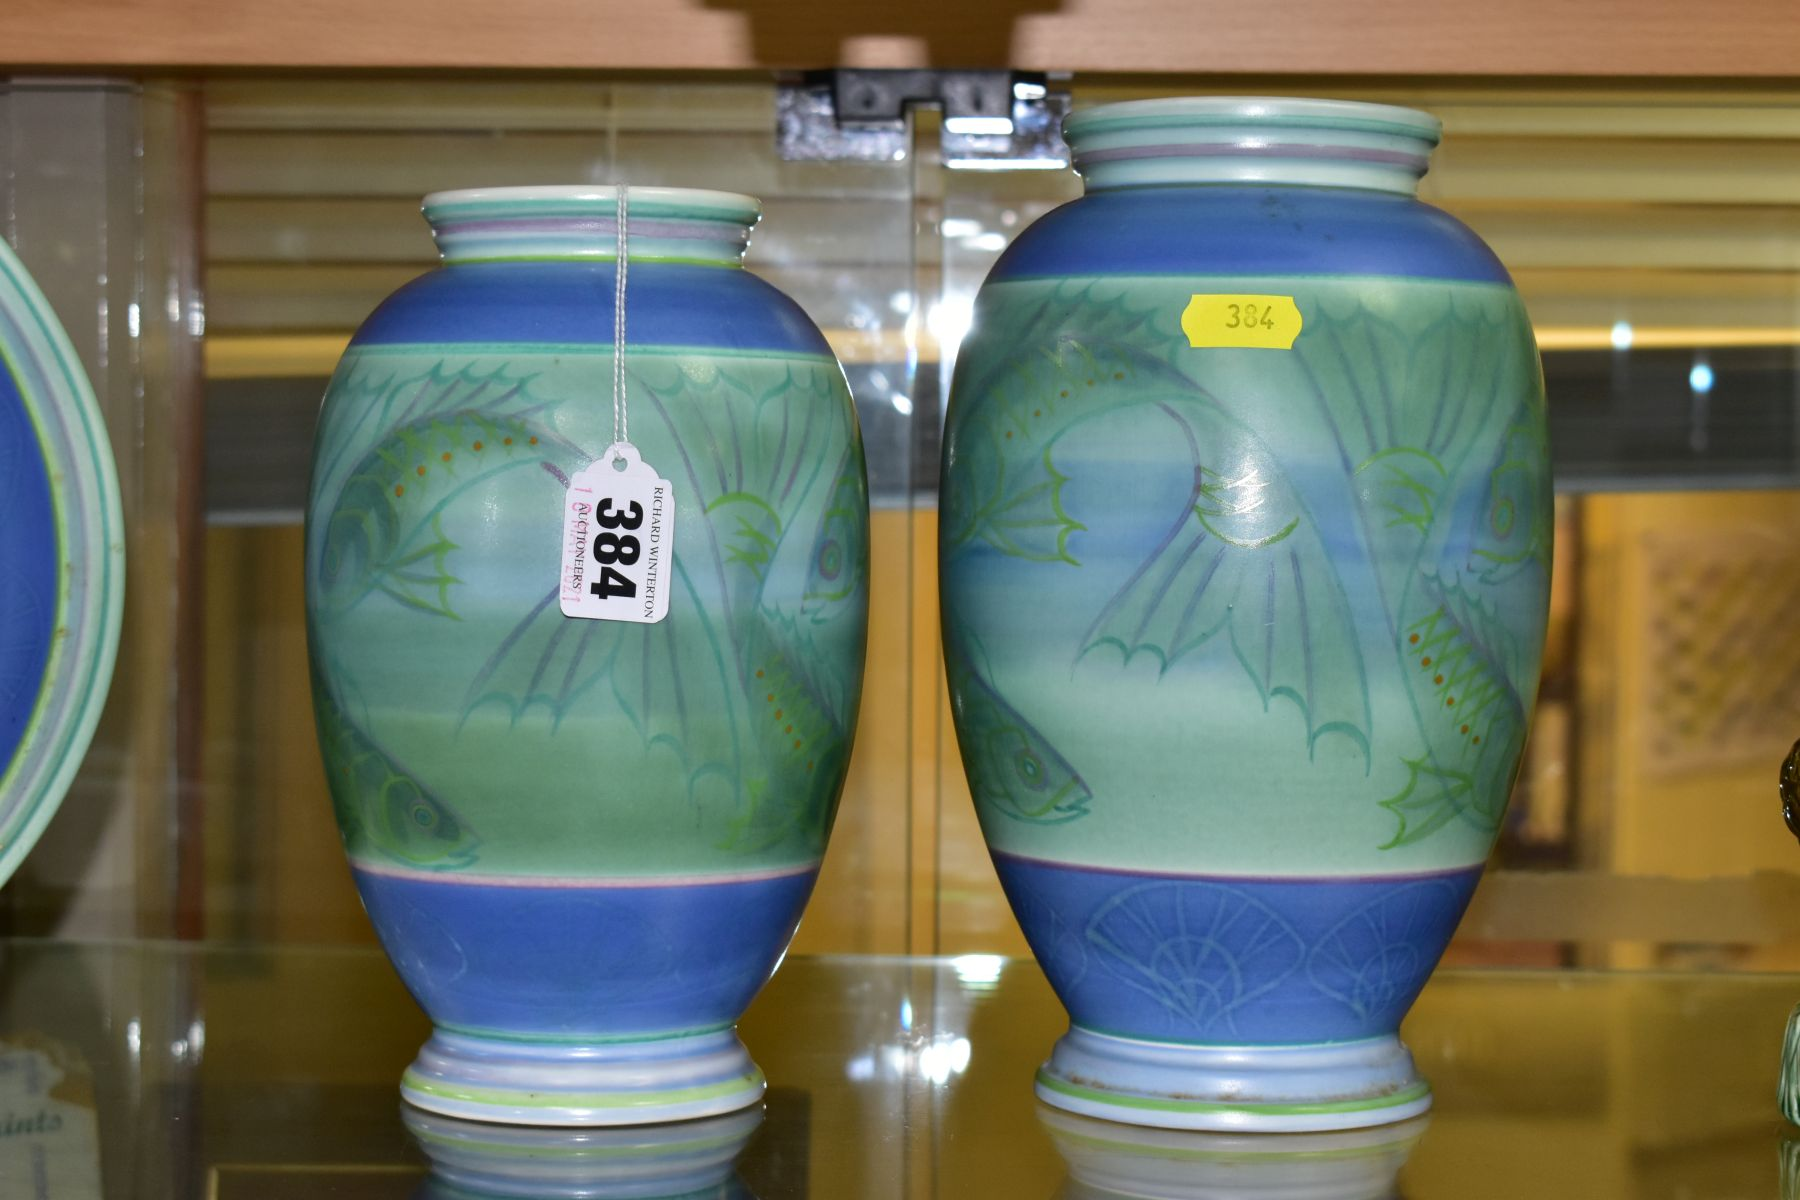 A POOLE STUDIO SALLY TUFFIN BALUSTER VASE AND MATCHING JAR, the baluster vase handpainted with bands